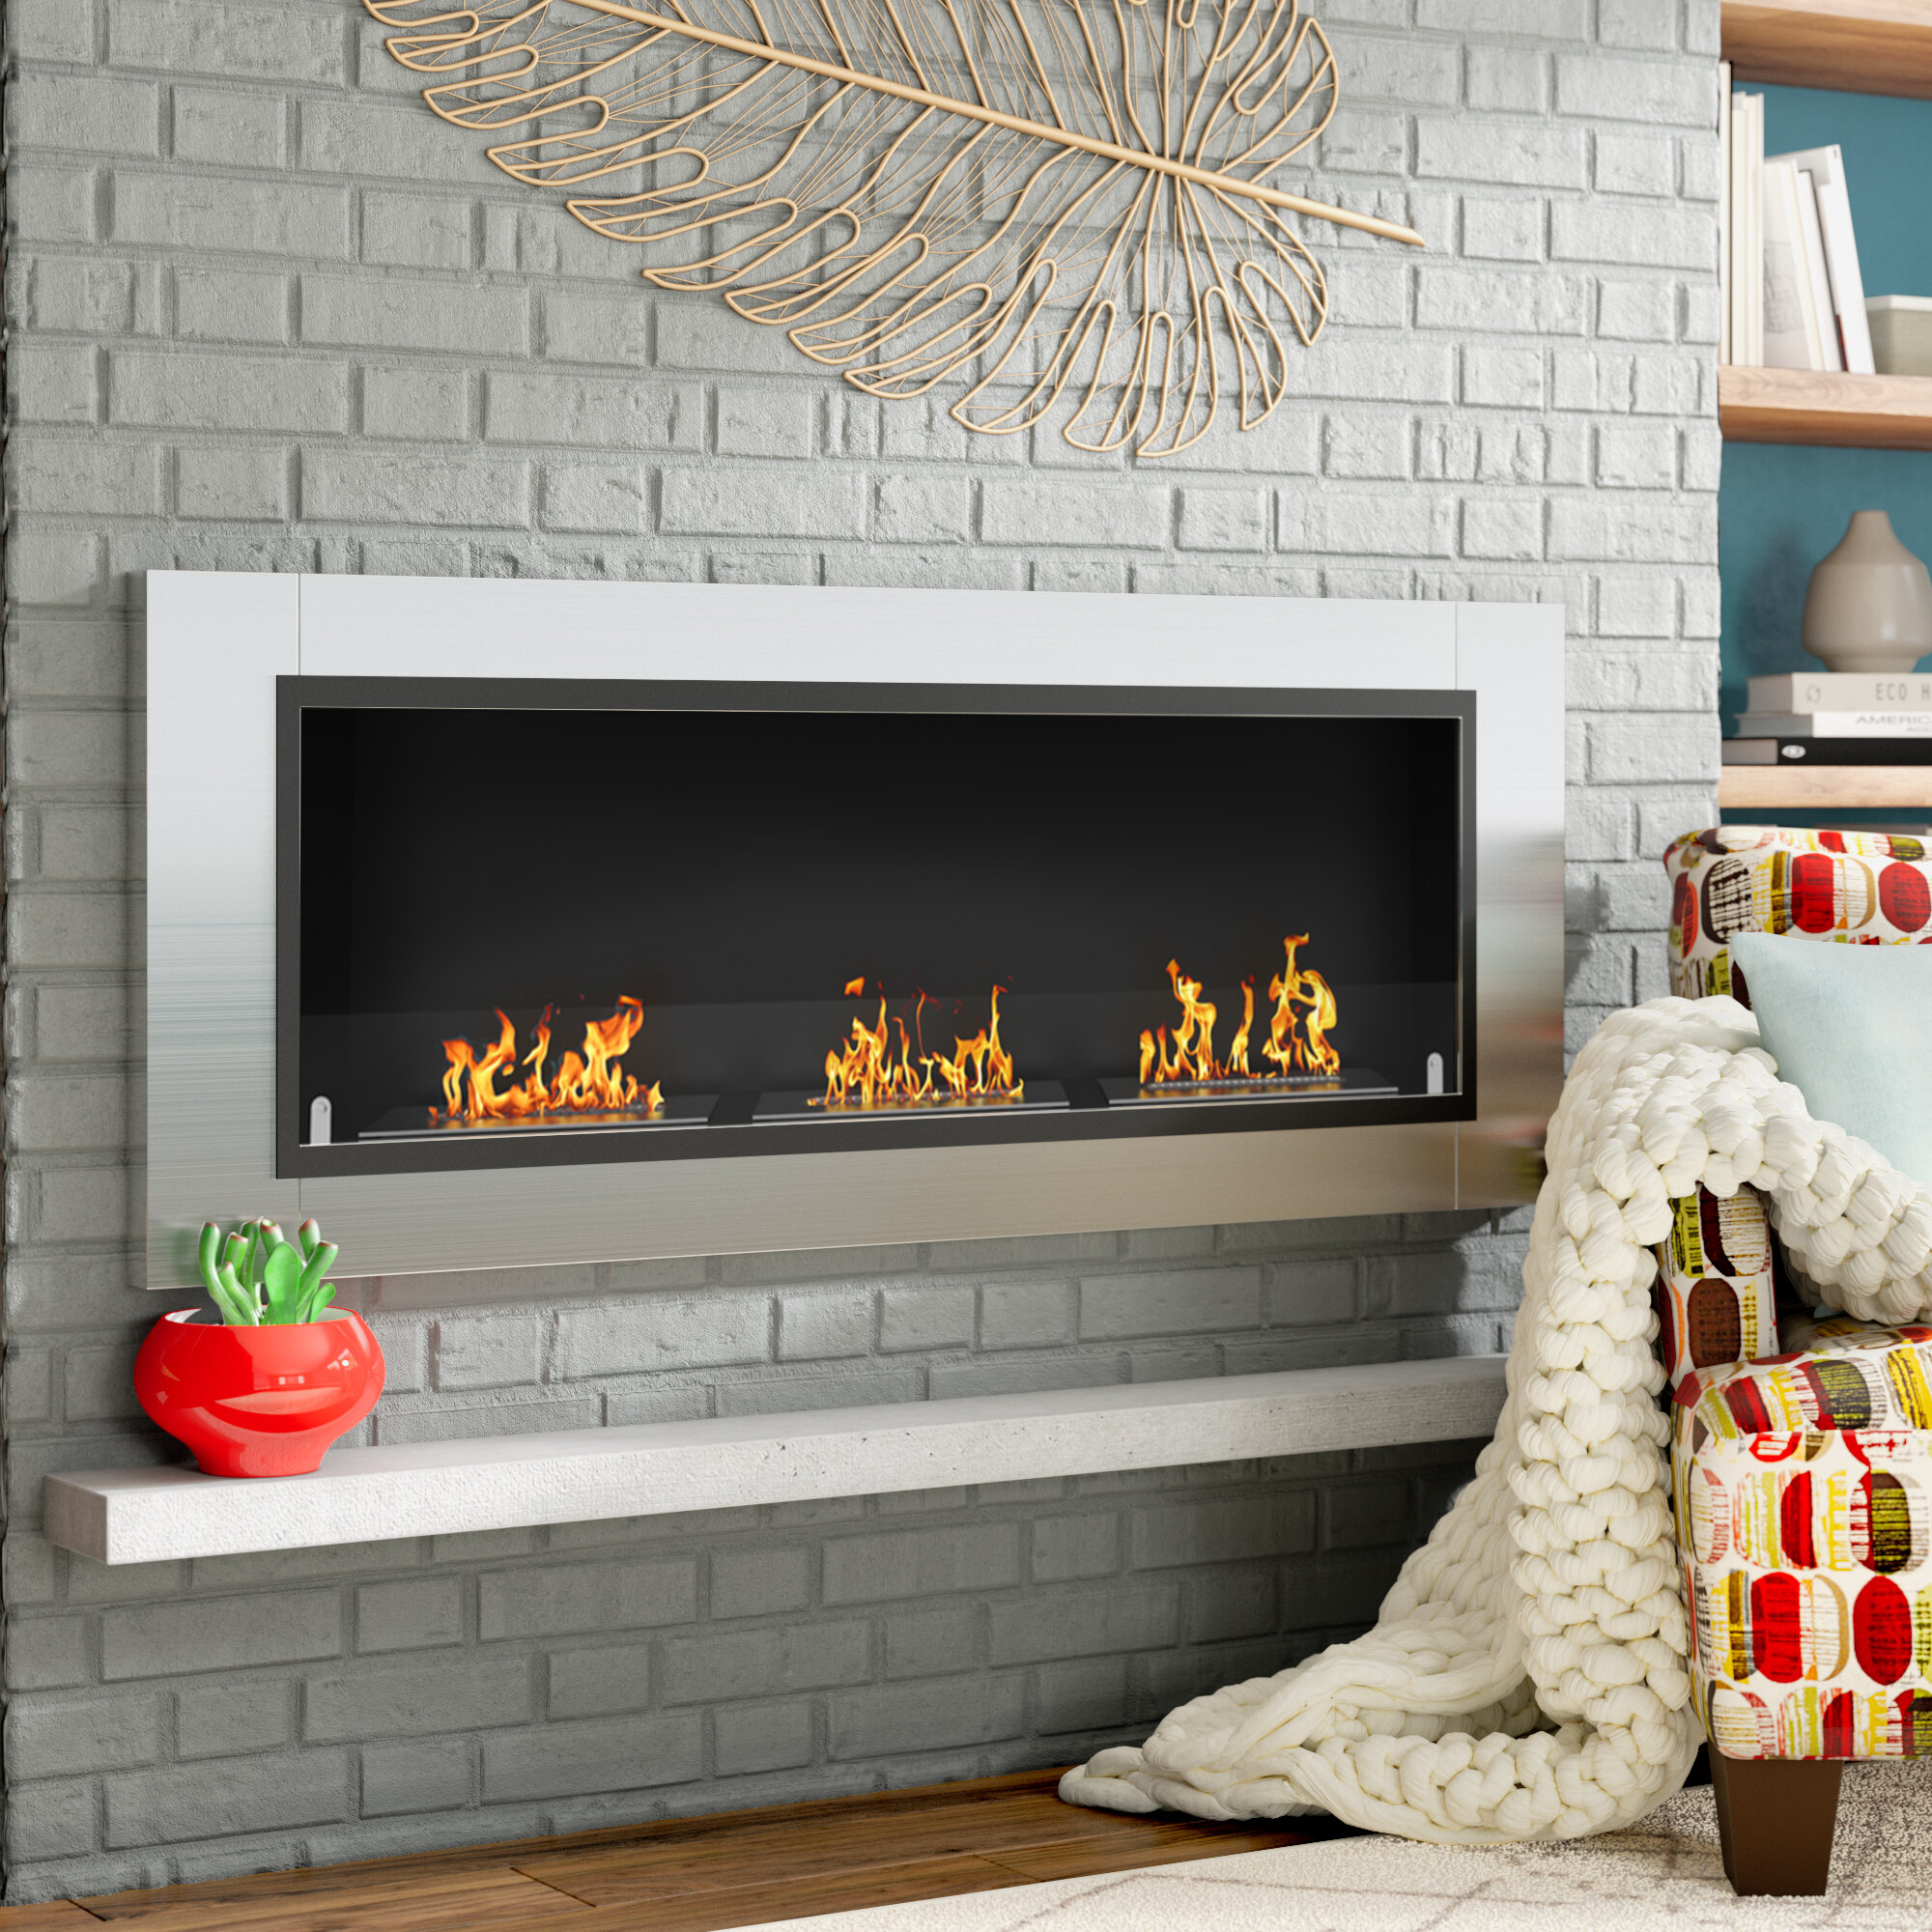 bio fireplace ready pictures atlantic wall fireplaces product ae bioethanol ethanol decoflame tower mounted made